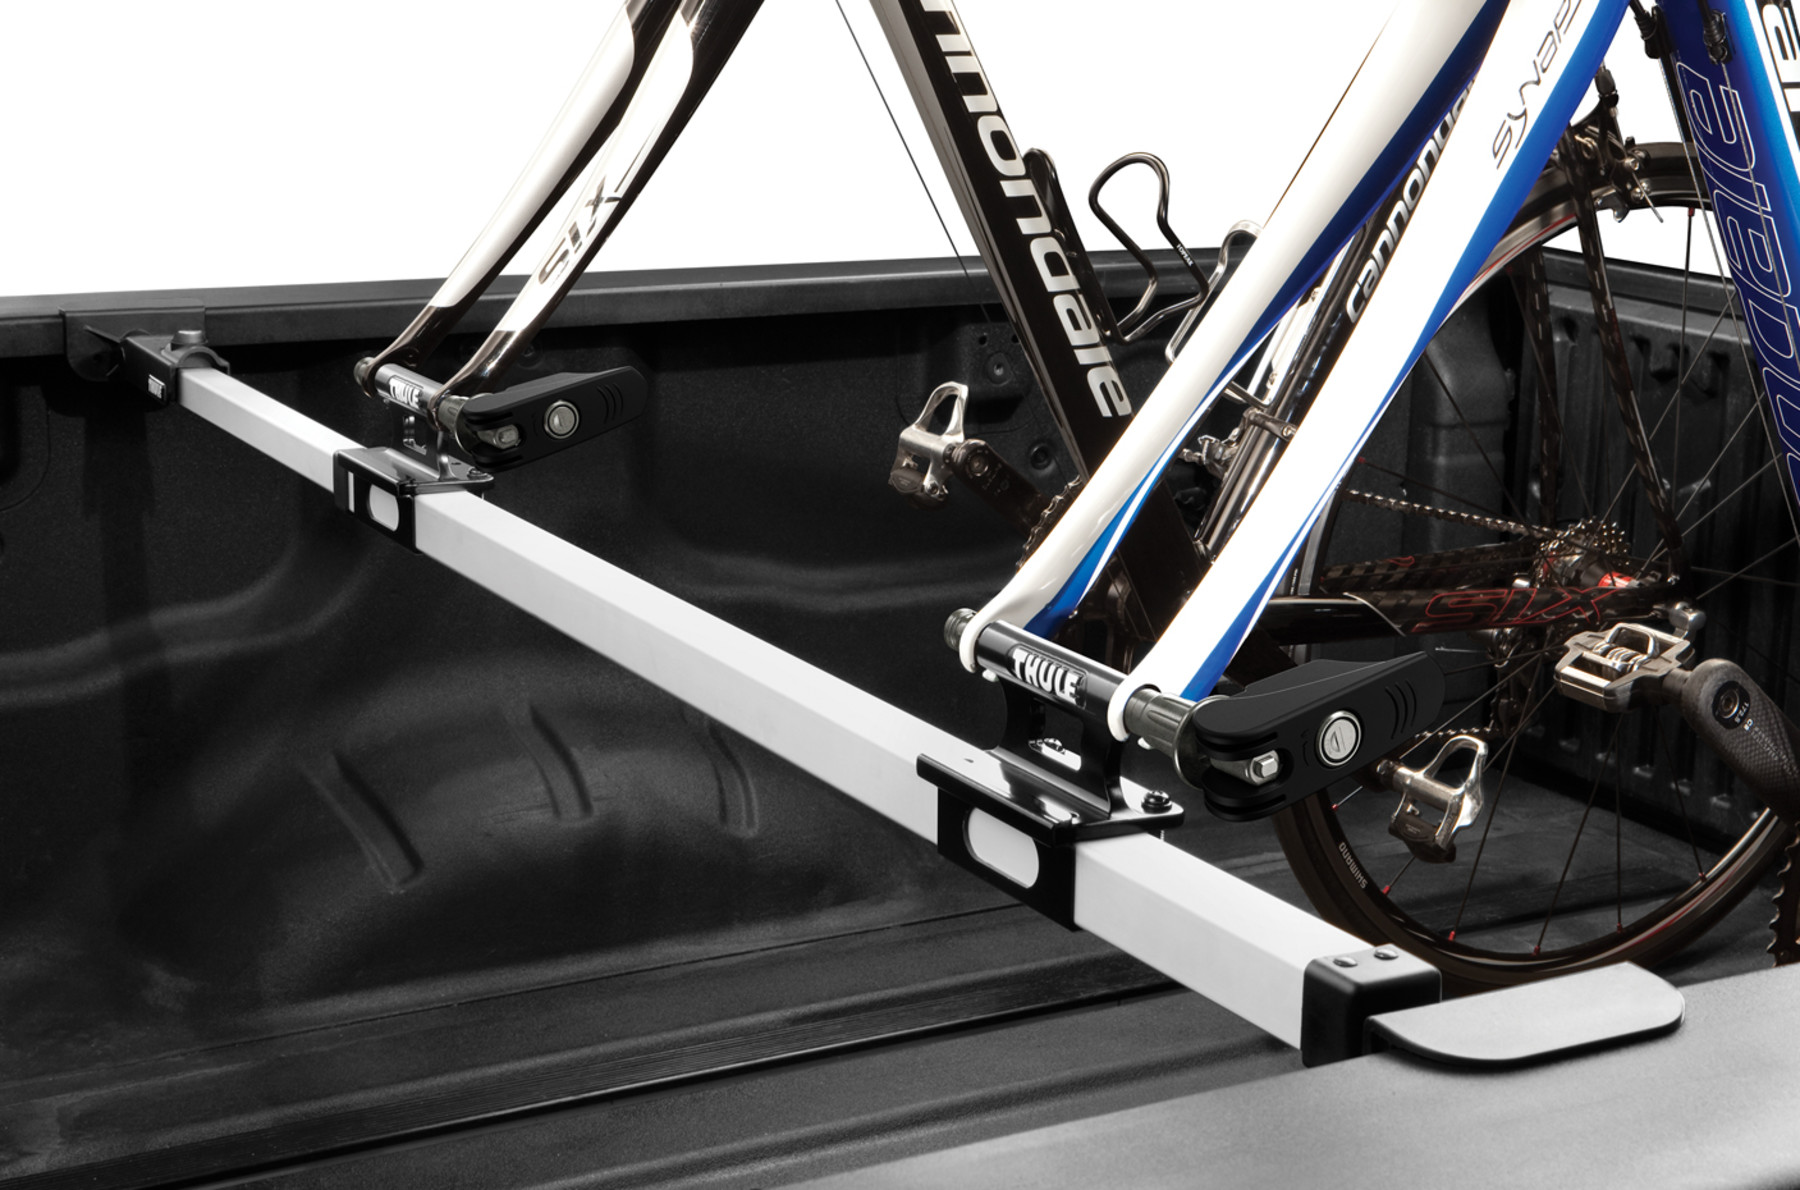 Thule Truck Bed Rack >> Thule Bed Rider